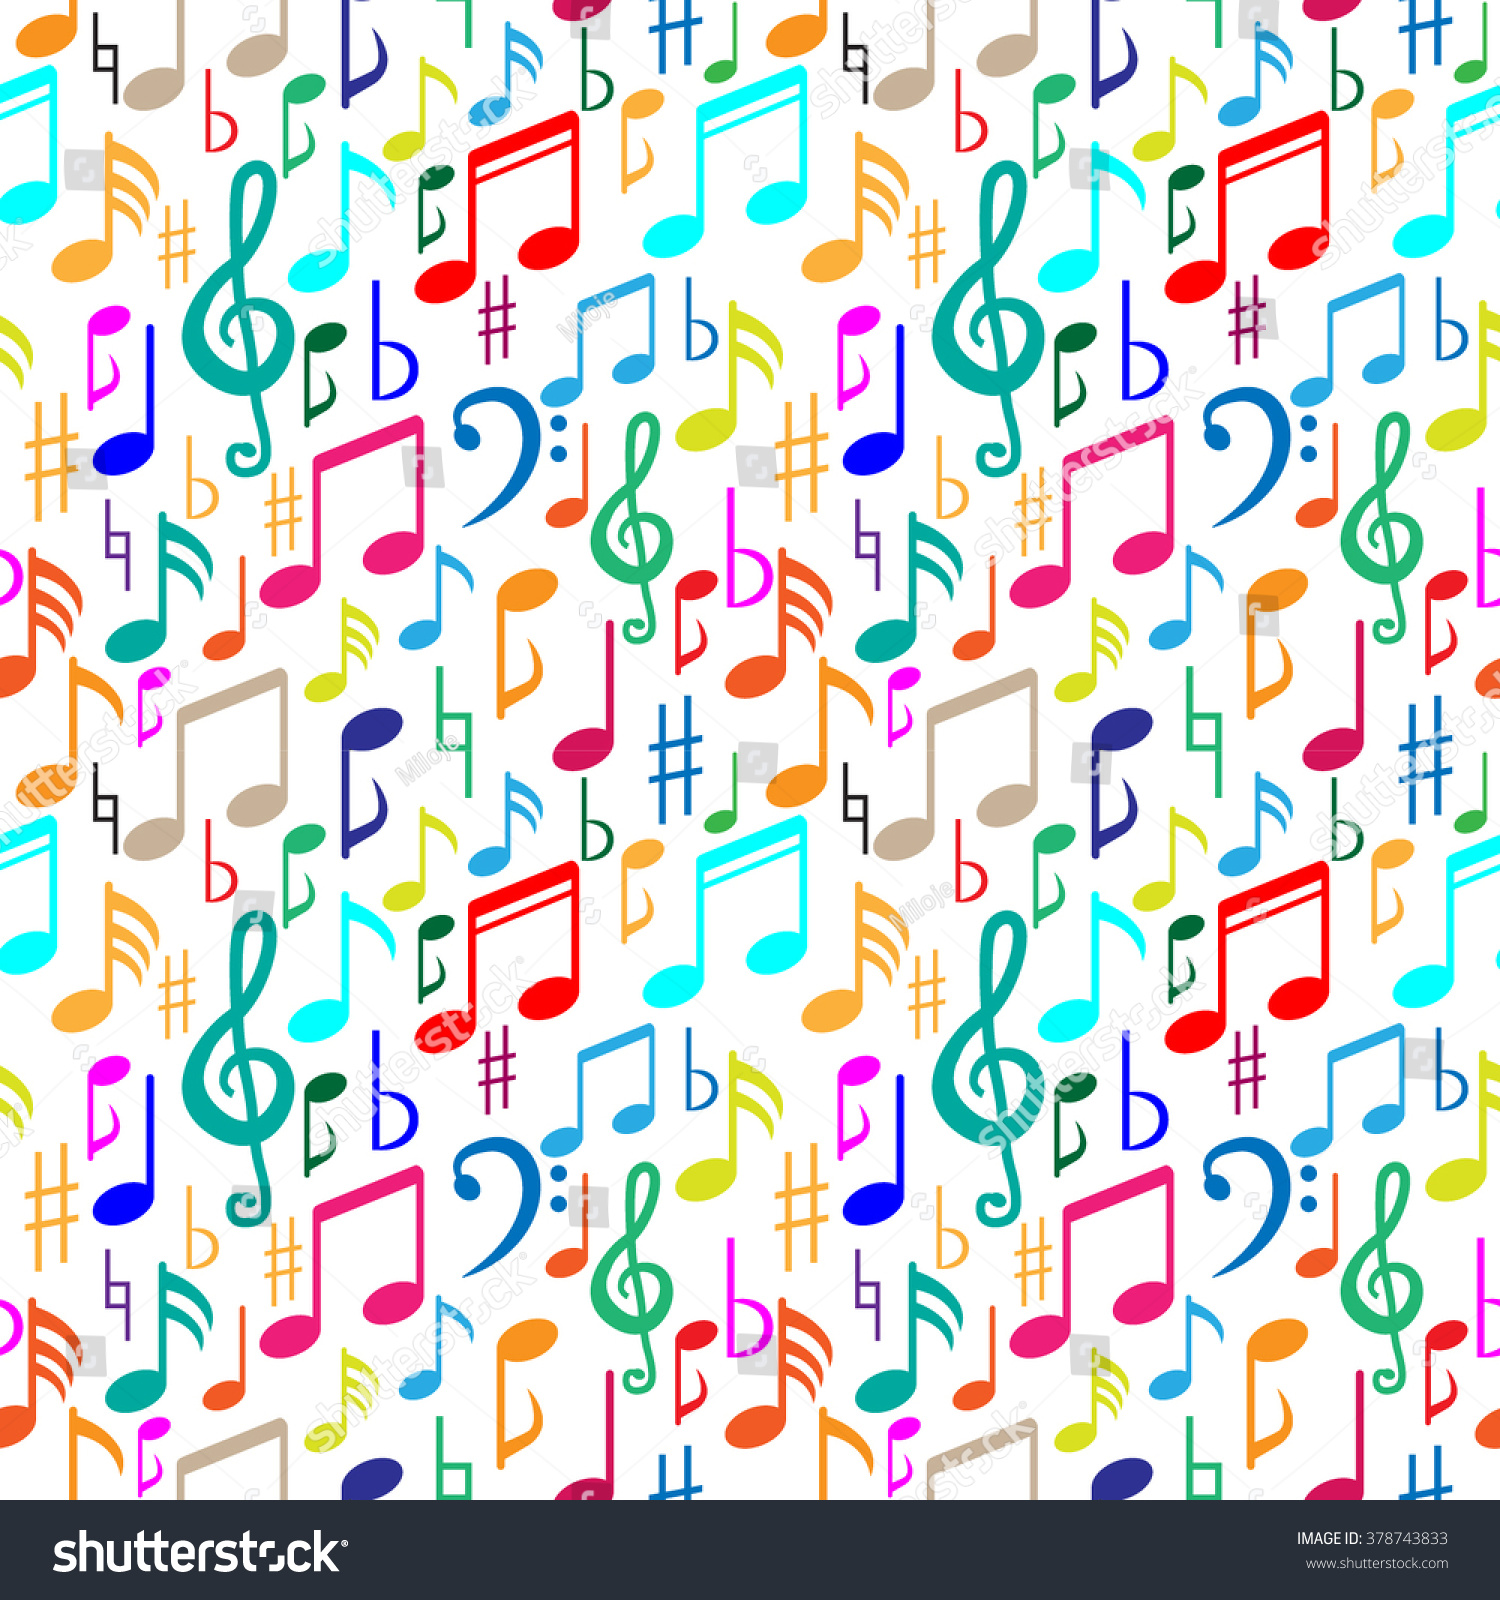 Music Note Pattern Interesting Design